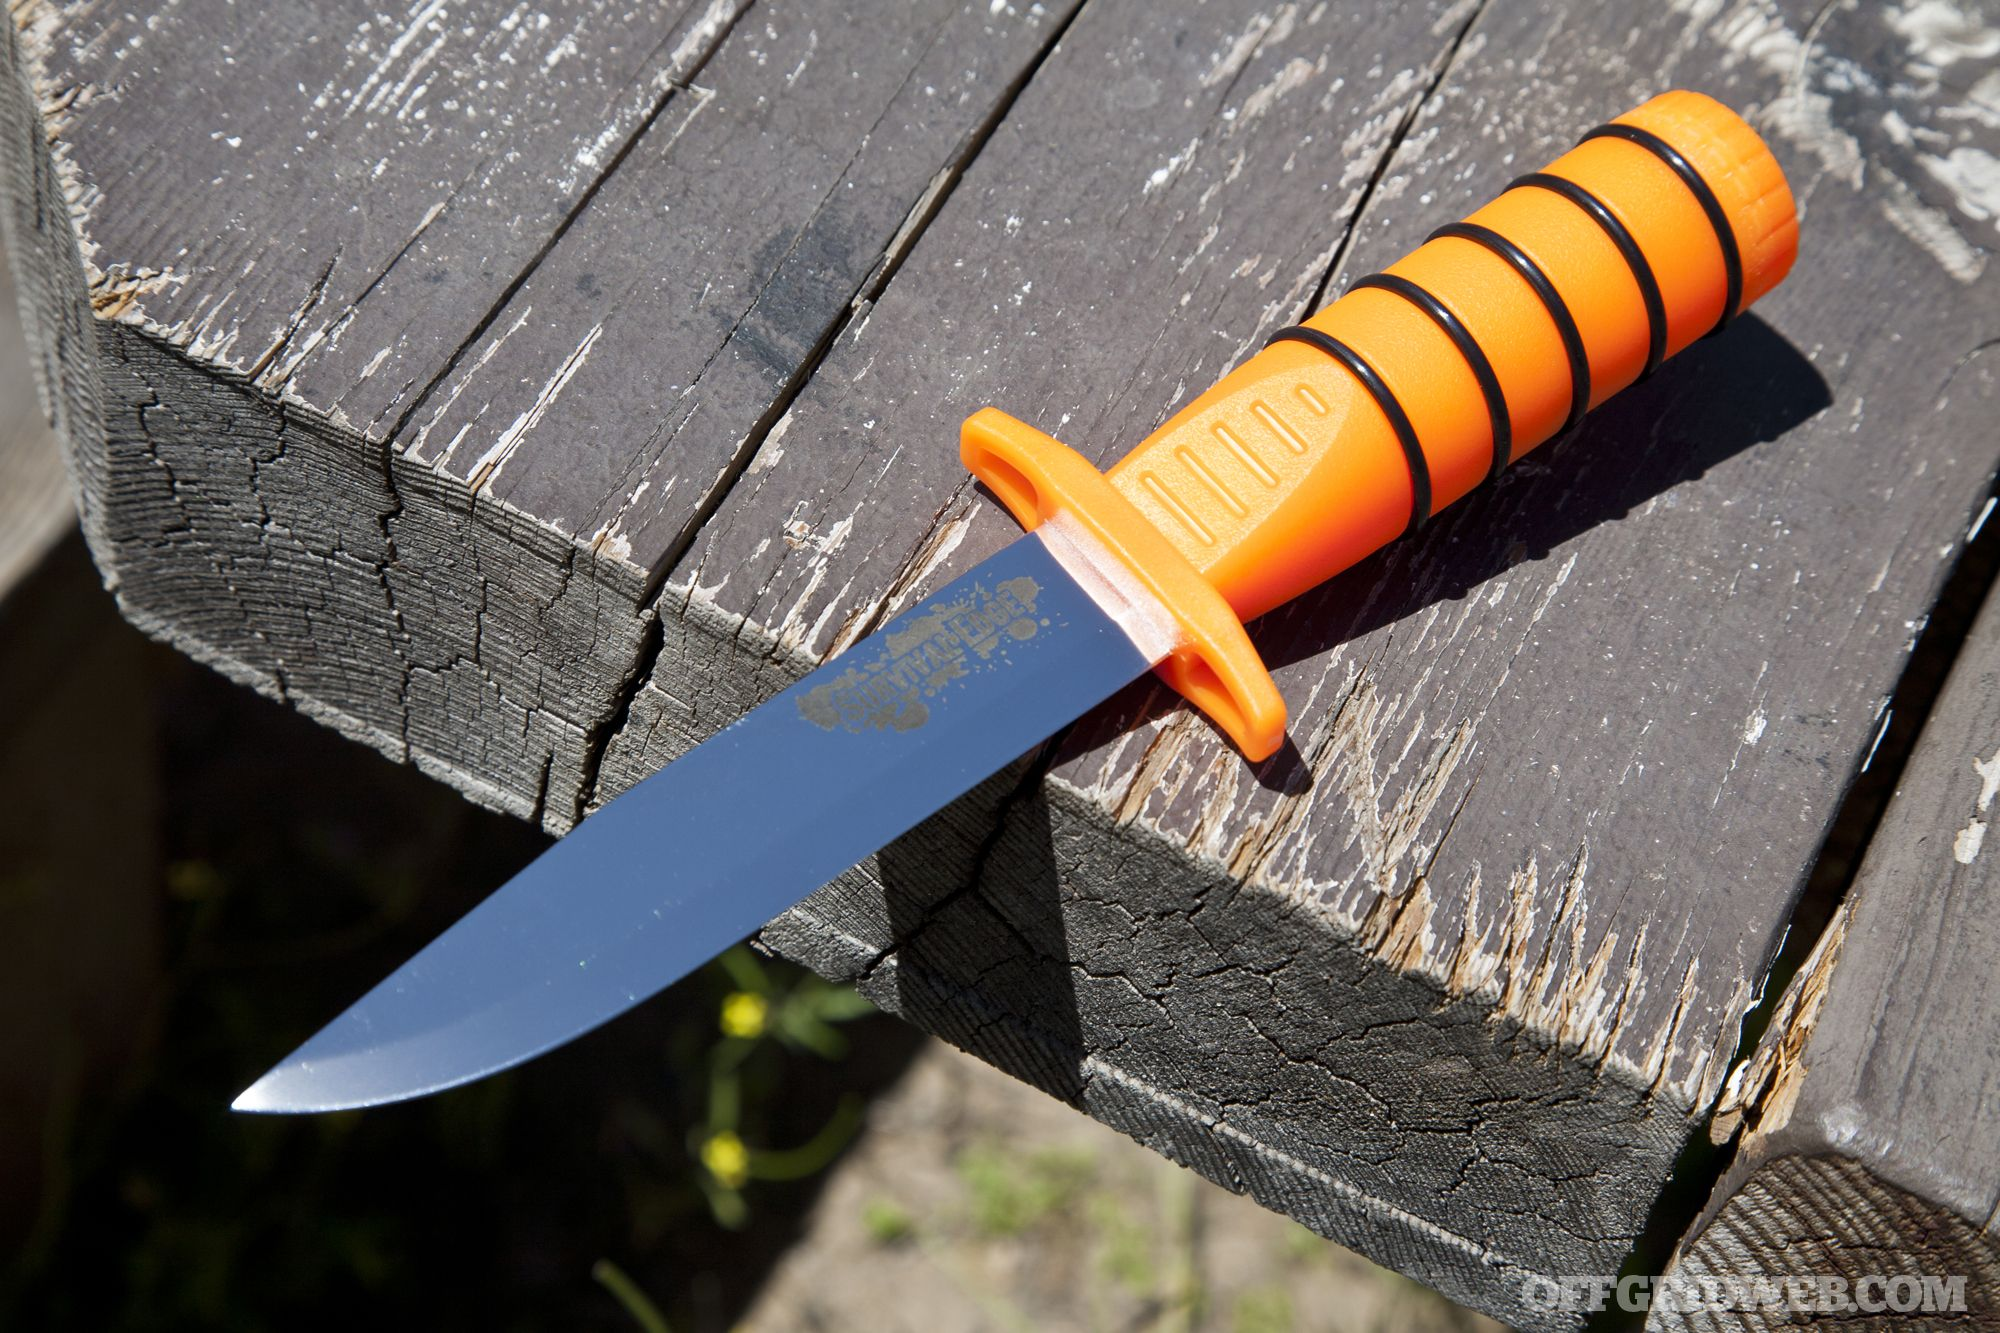 Cold-Steel-Survival-Edge-knife-review-11.jpg (2000×1333)